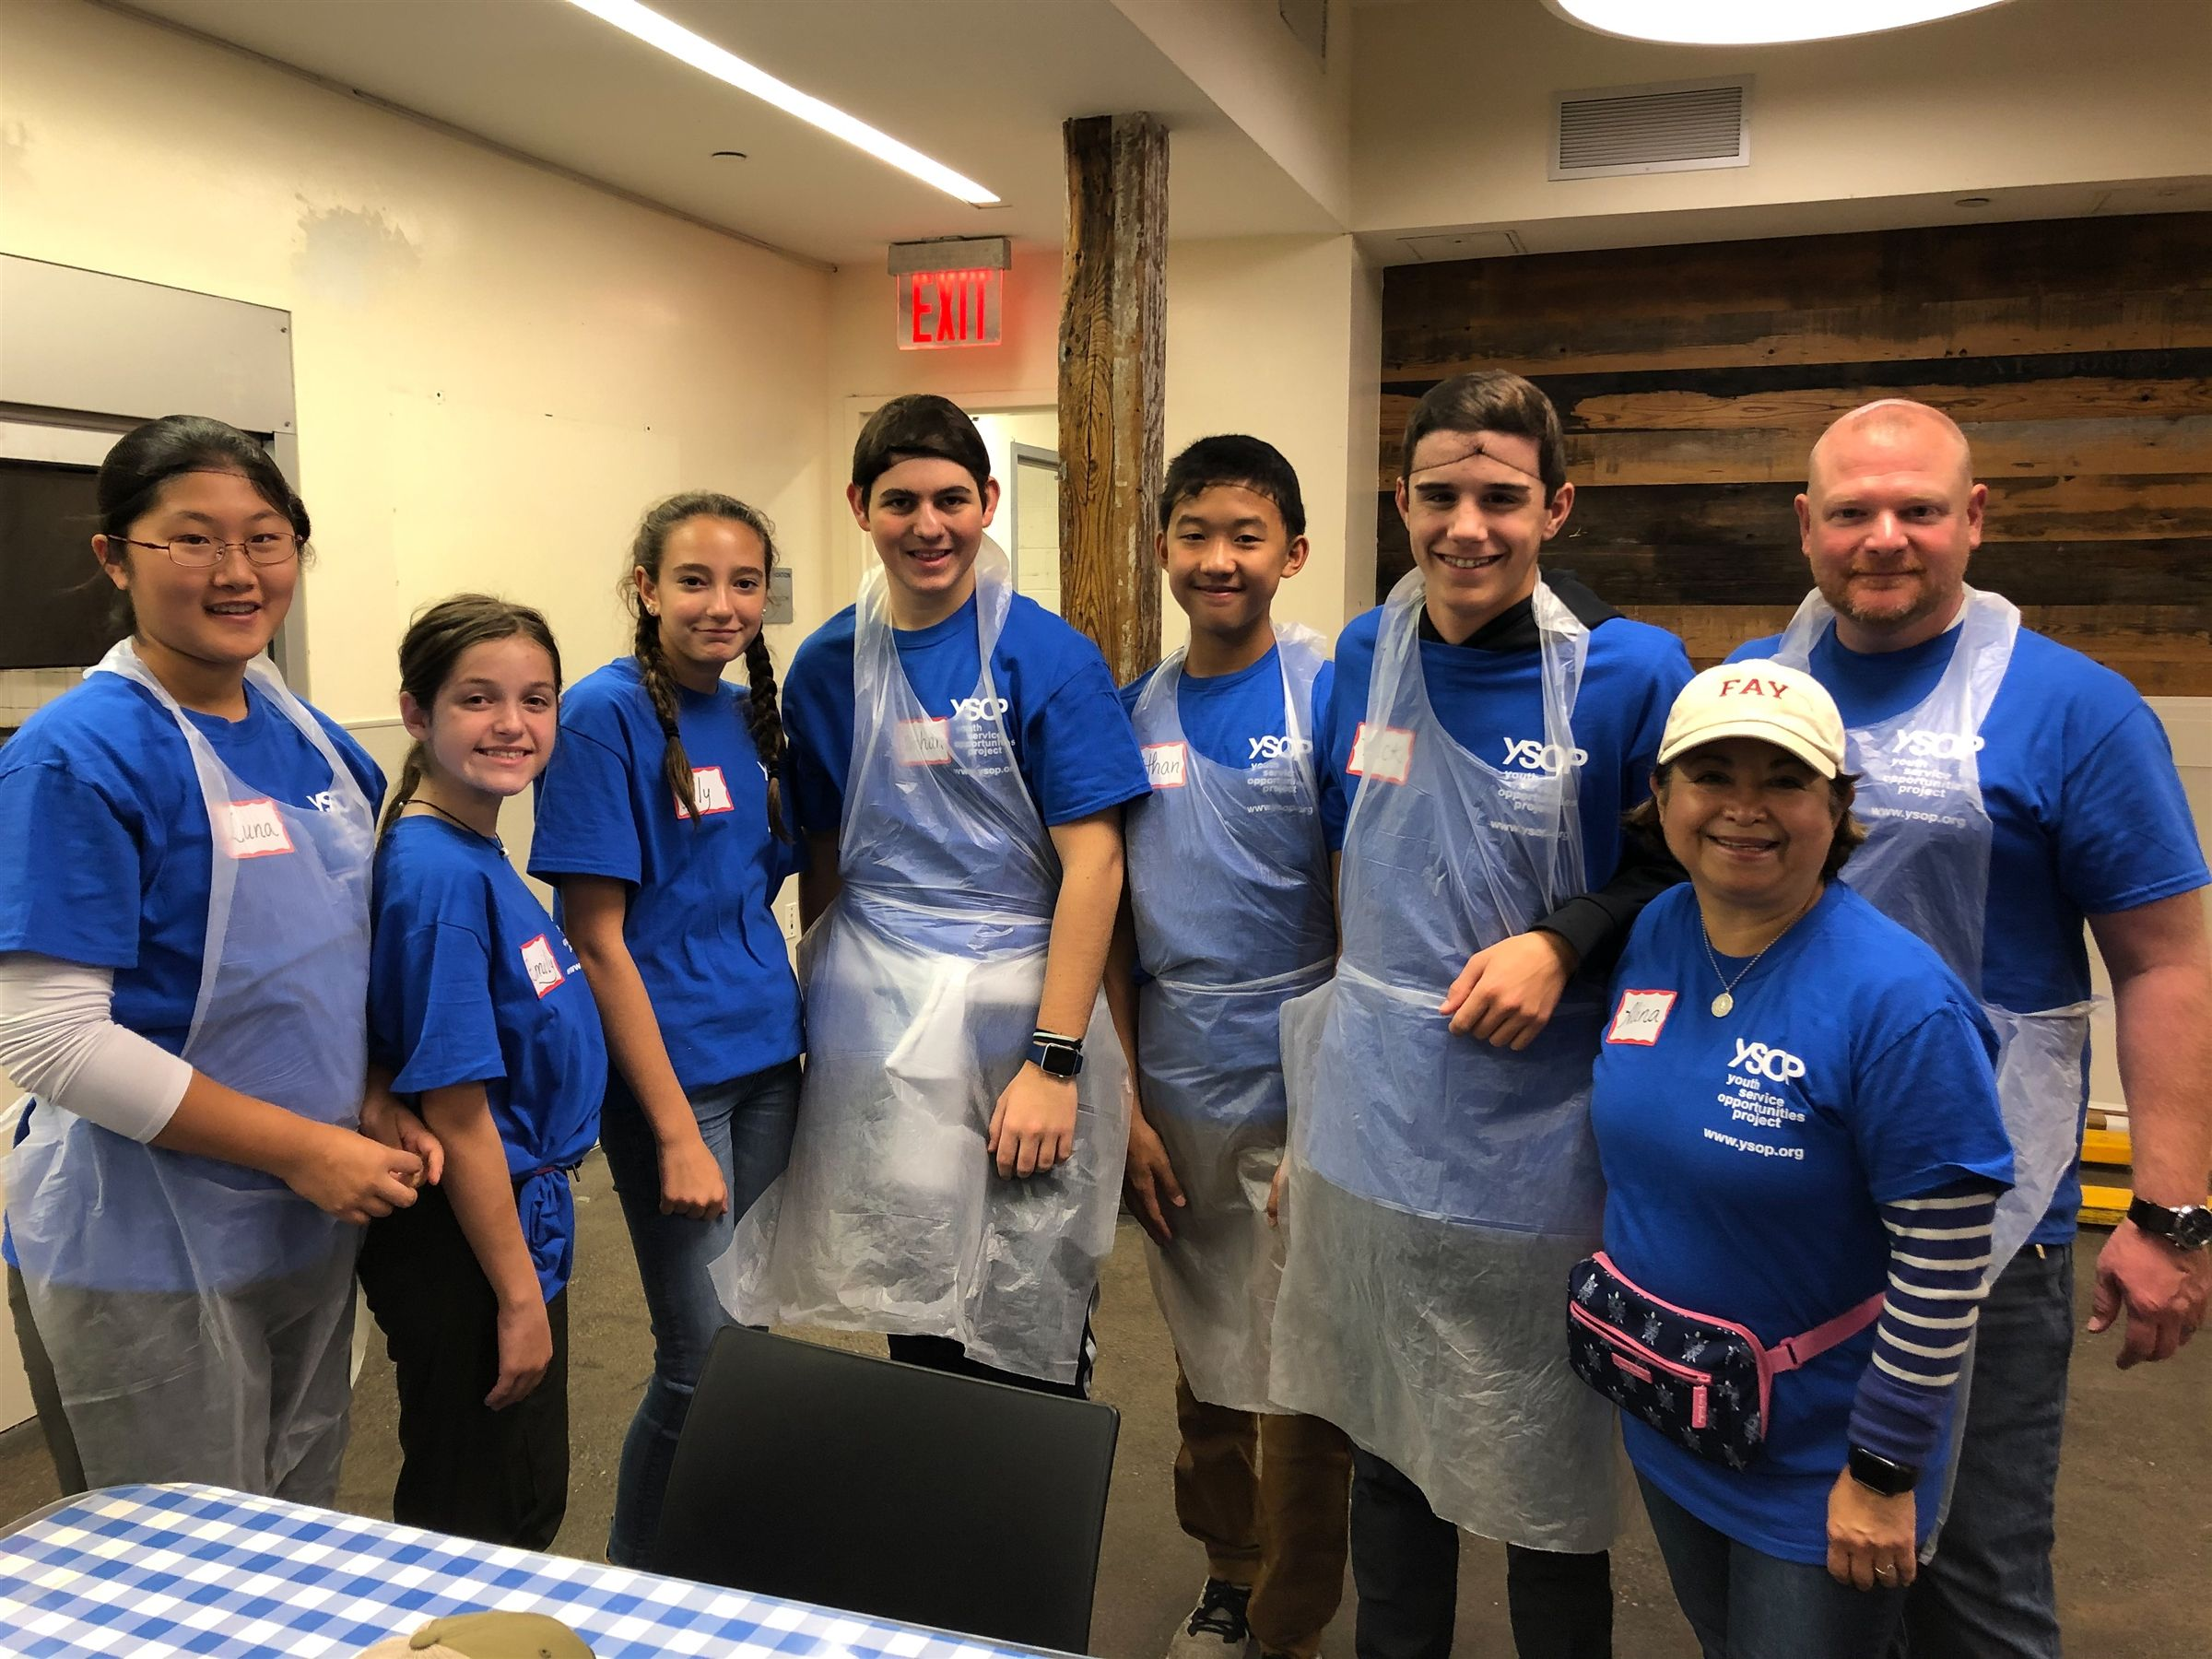 Eighth grade students in New York City working with the Youth Service Opportunities Project at a local soup kitchen.